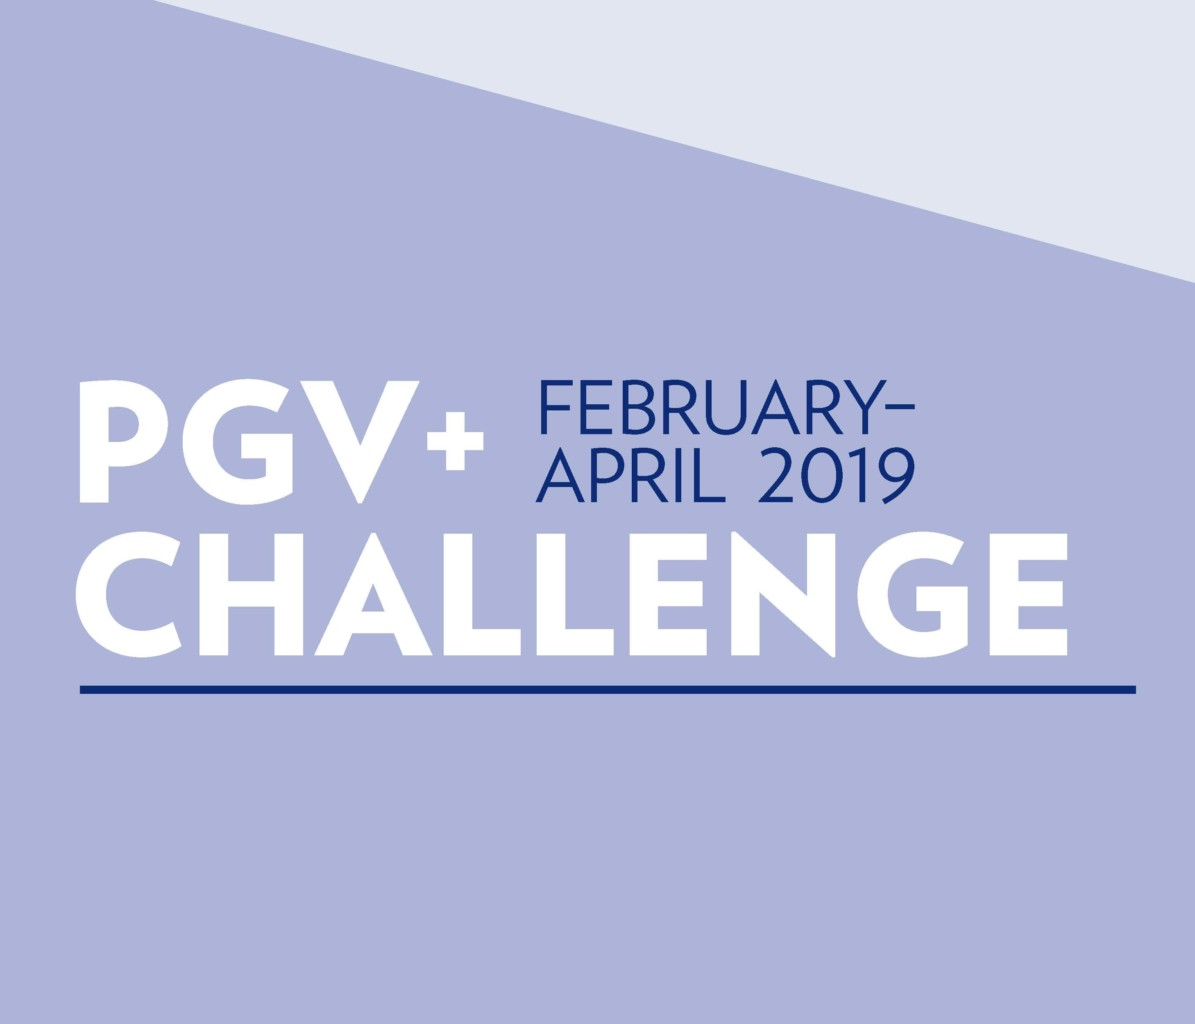 PGV+ Challenge | February – April 2019